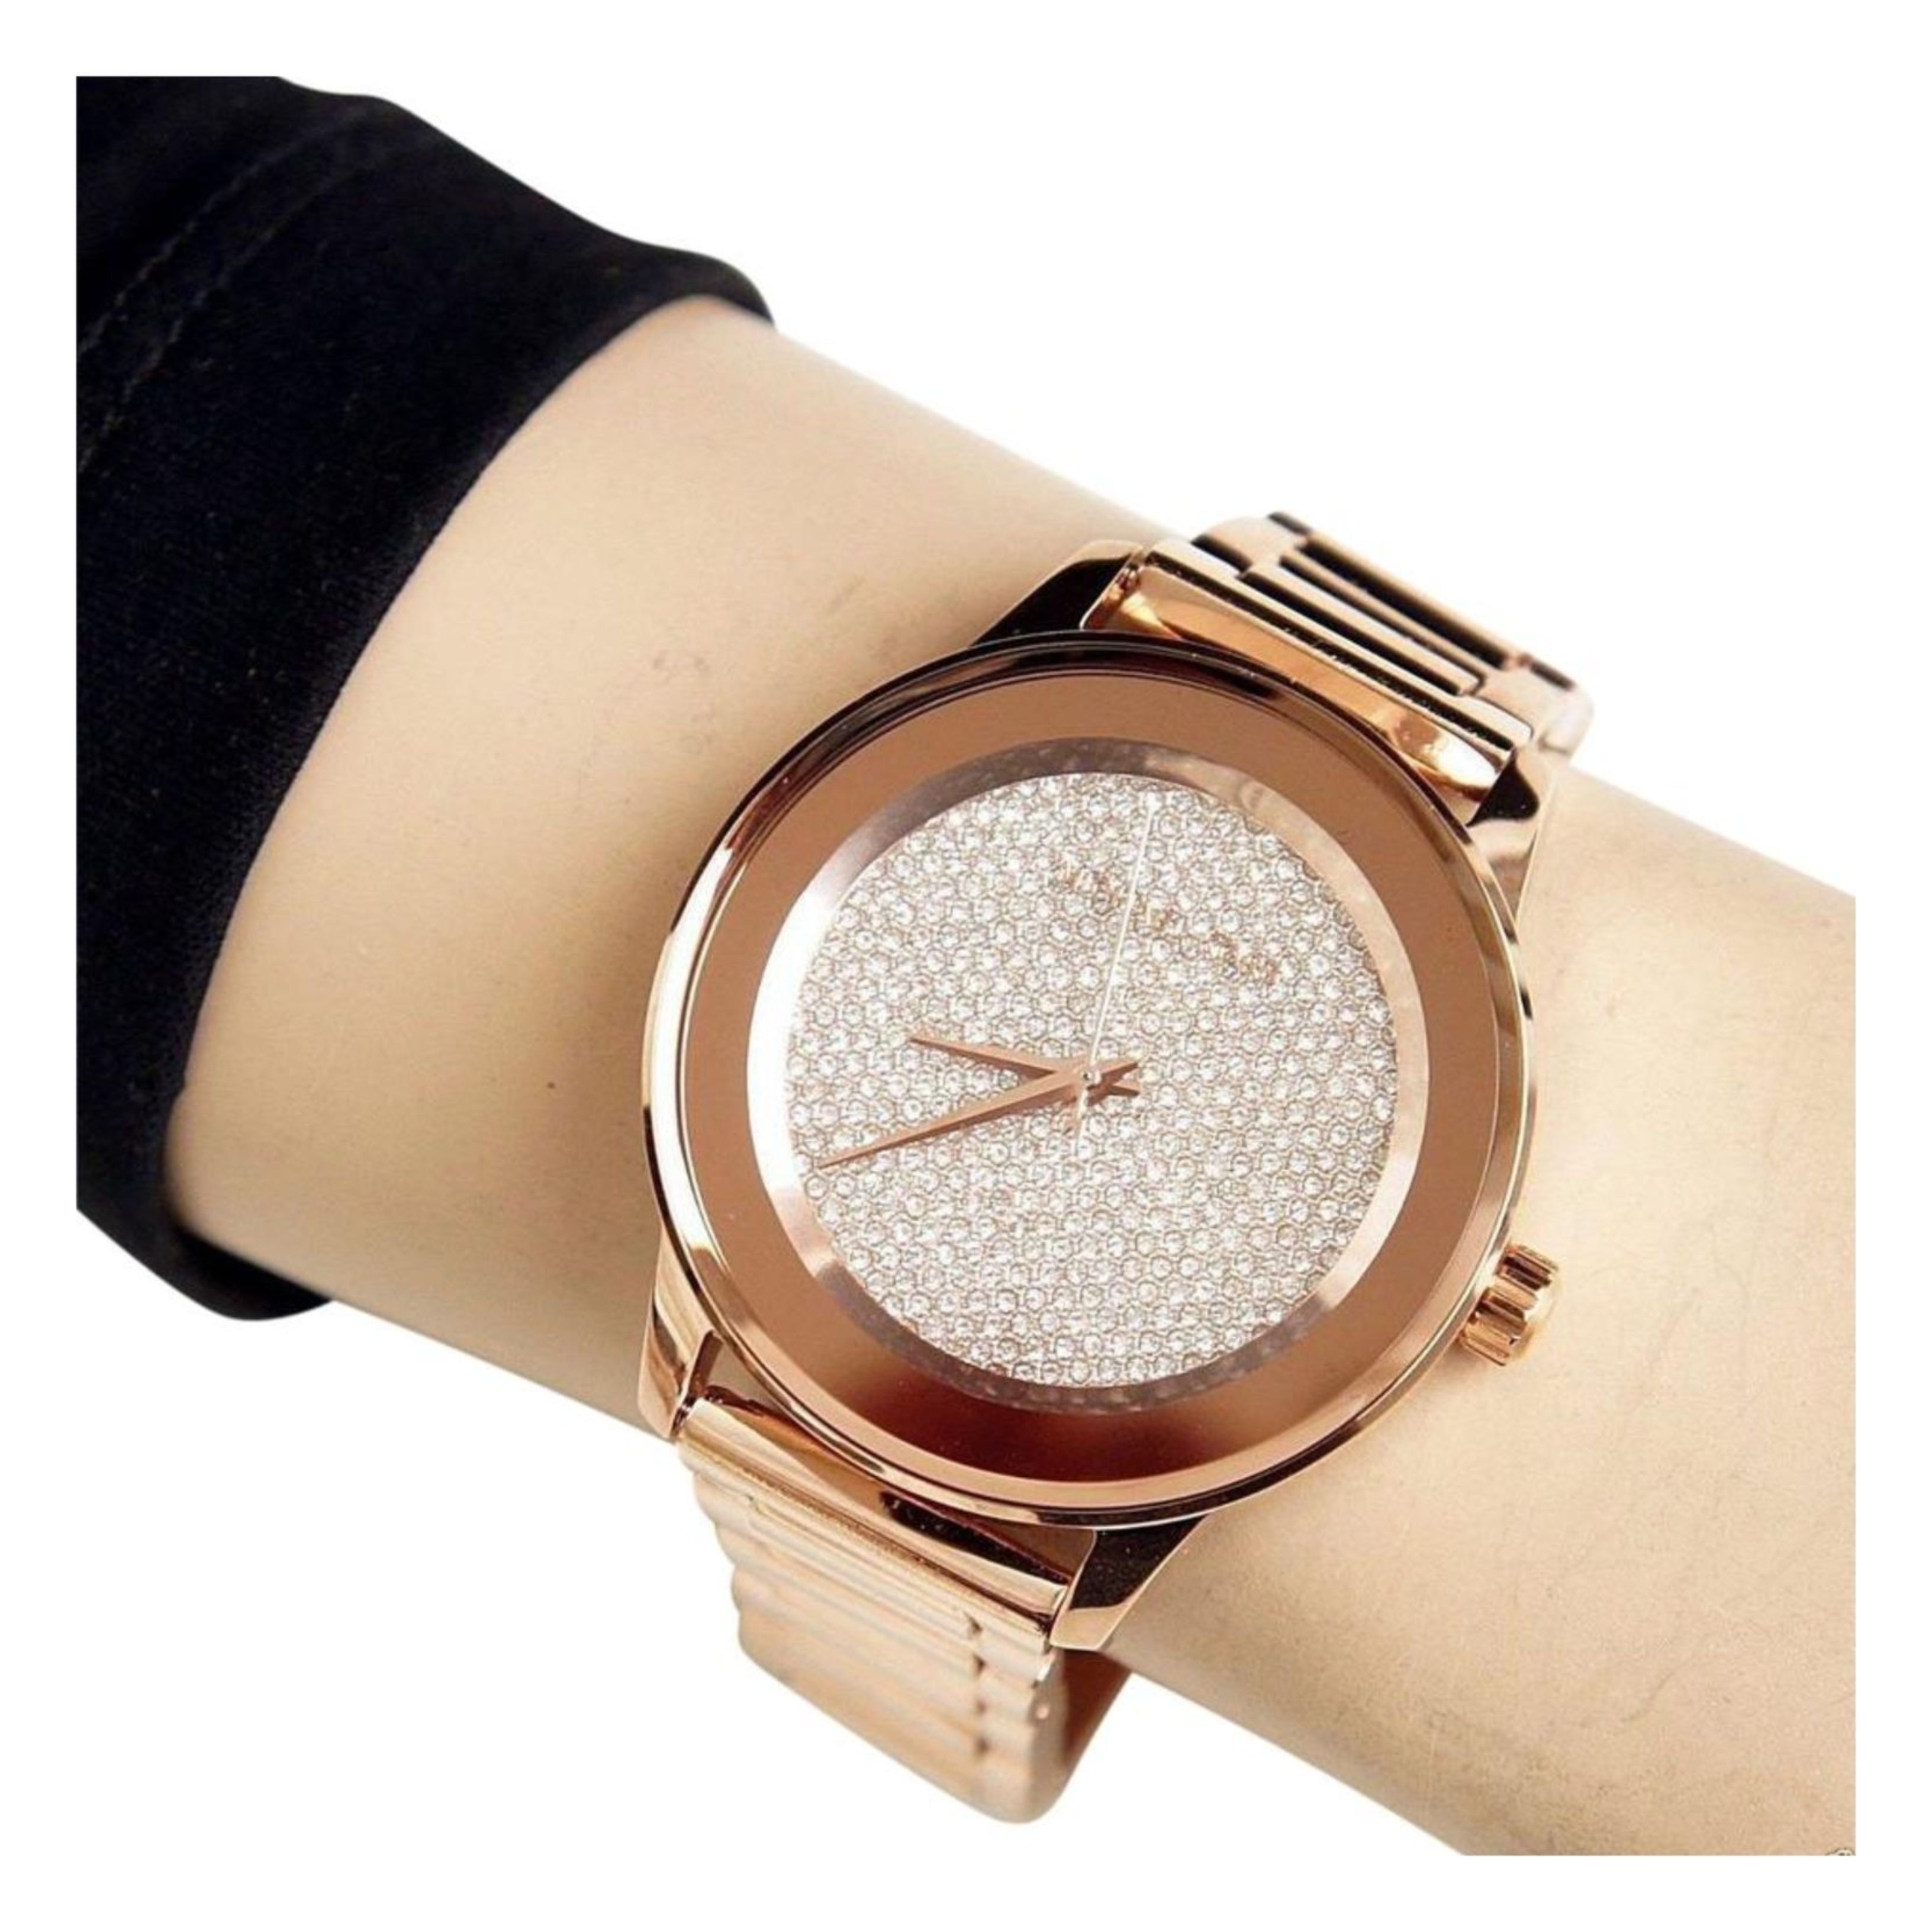 2aec8bbe69710 Sentinel Michael Kors Kinley Women Watch MK6210│Crystal Pave Rose Gold  Dial│Bracelet Band